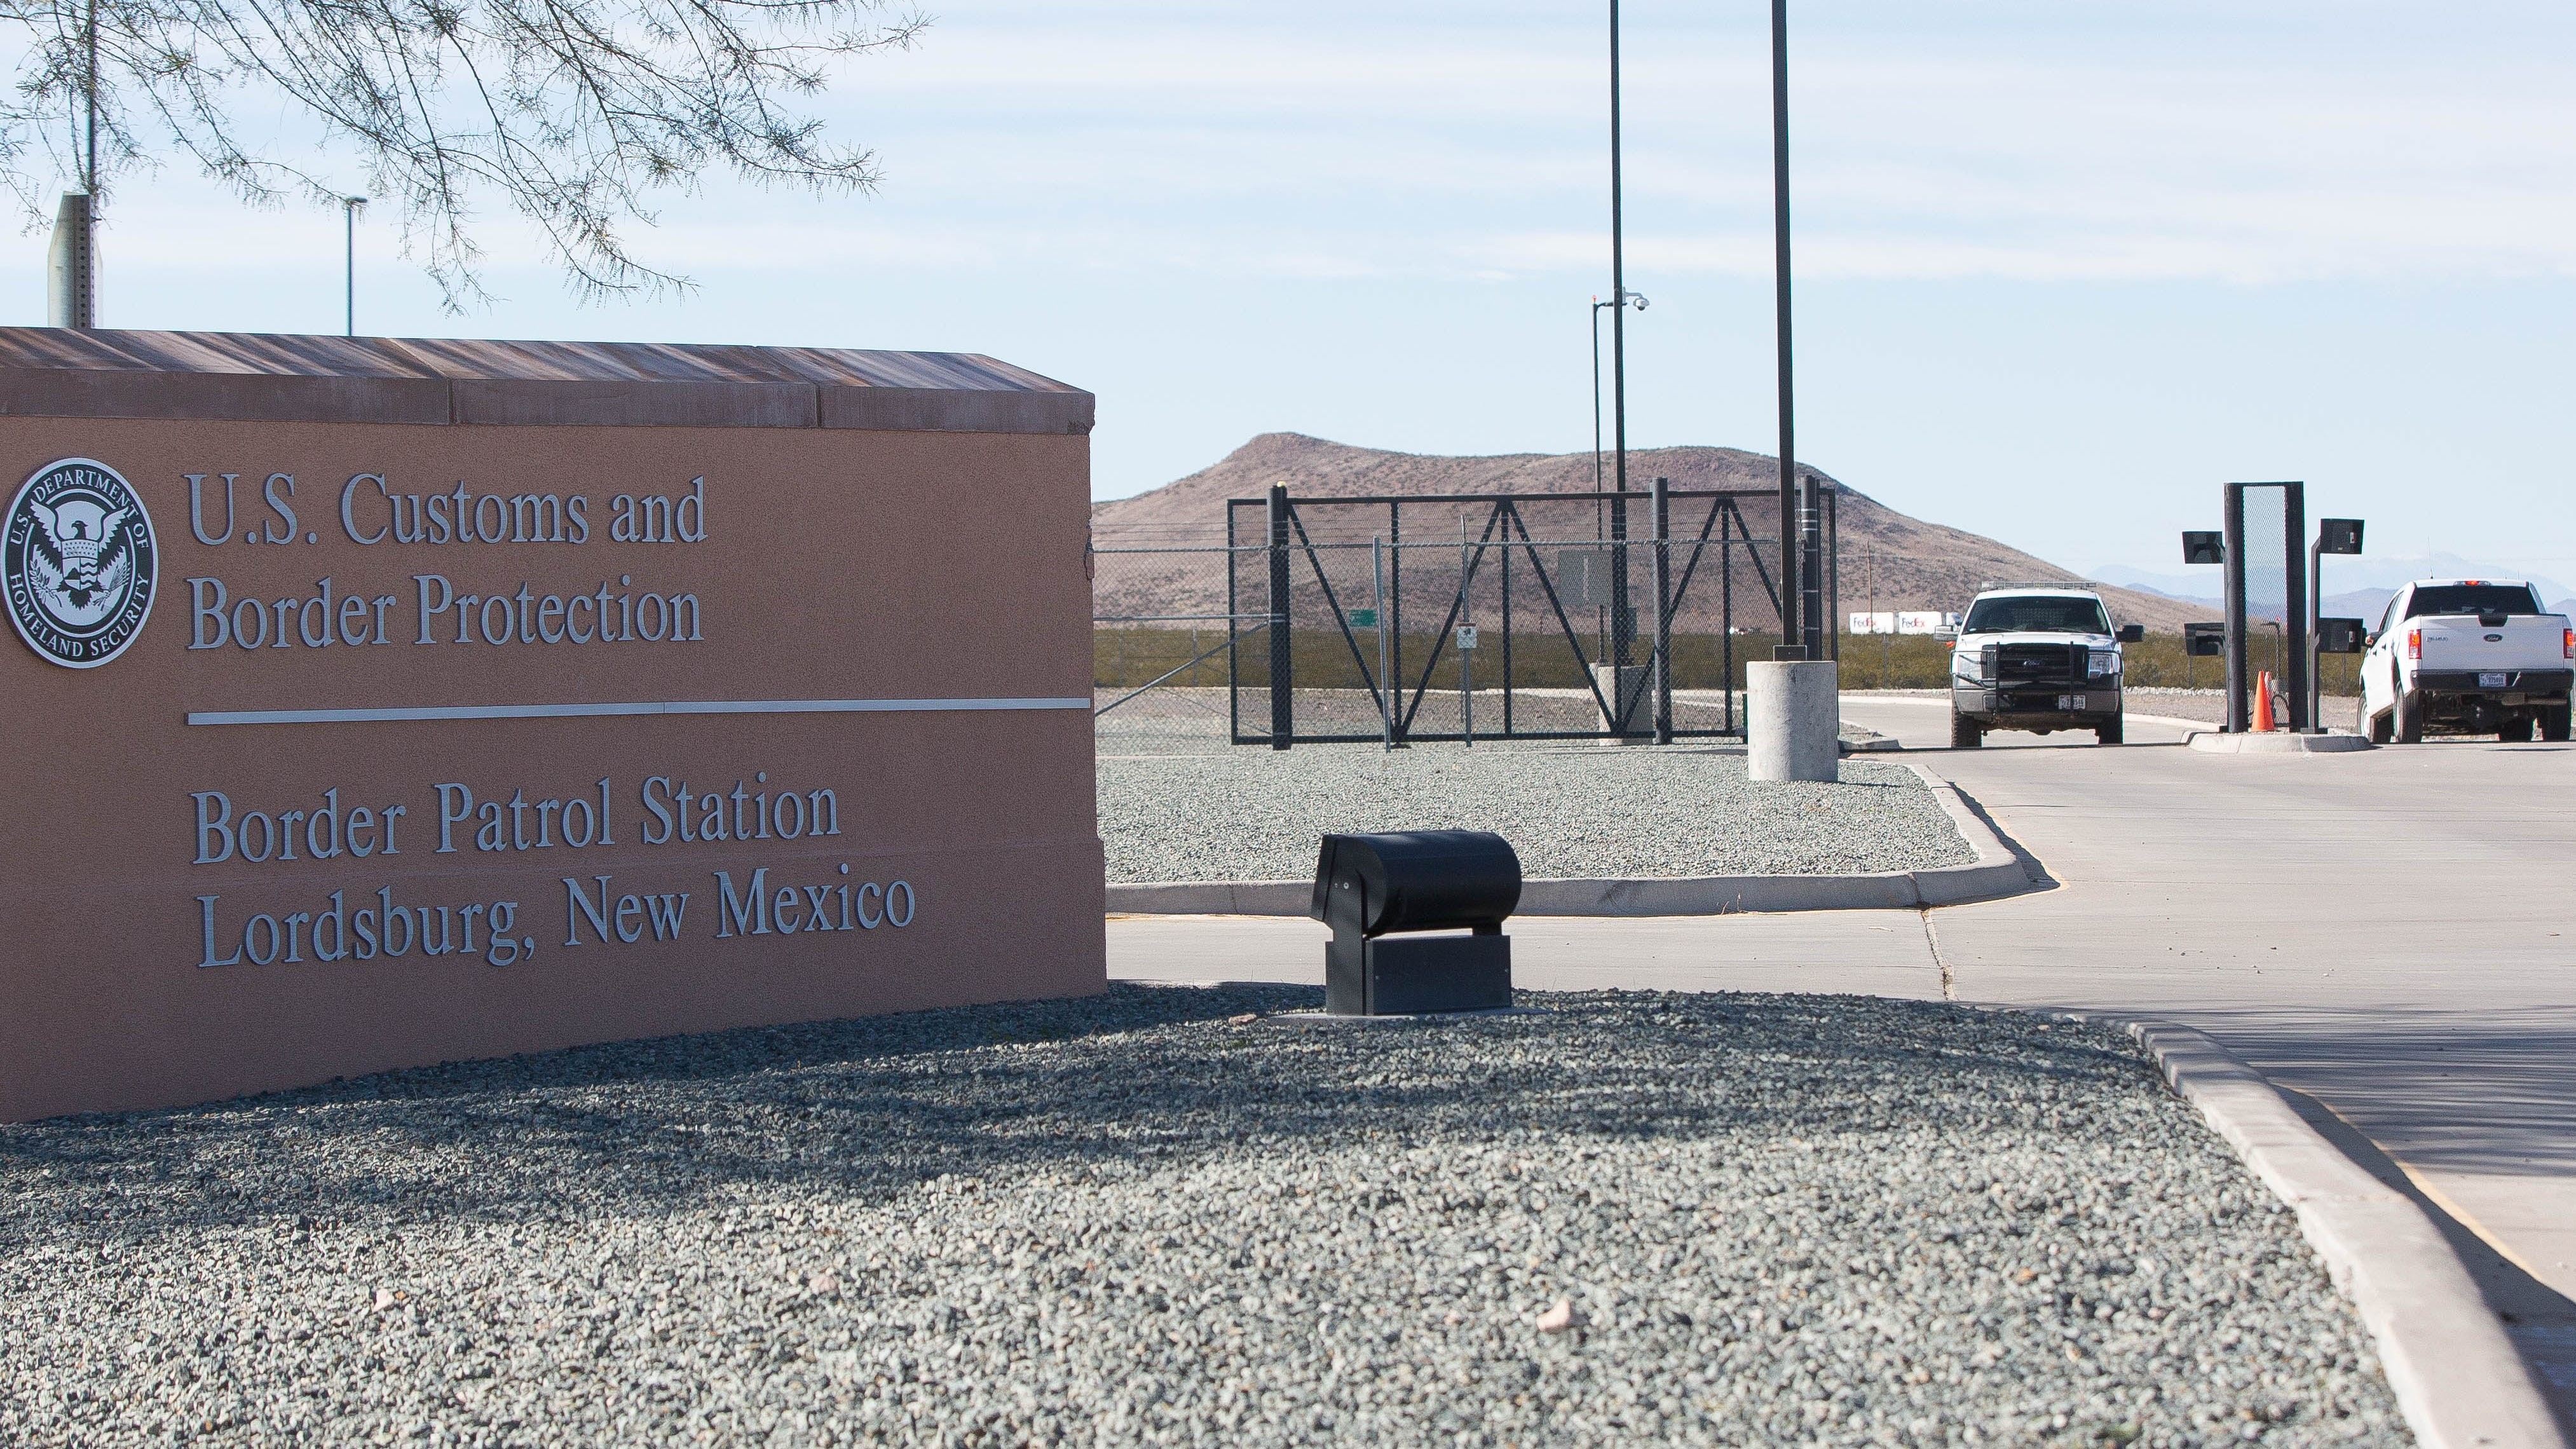 Members of the the Congressional Hispanic Caucus toured the Border Patrol station in Lordsburg, New Mexico on Tuesday, Dec. 18, 2018.